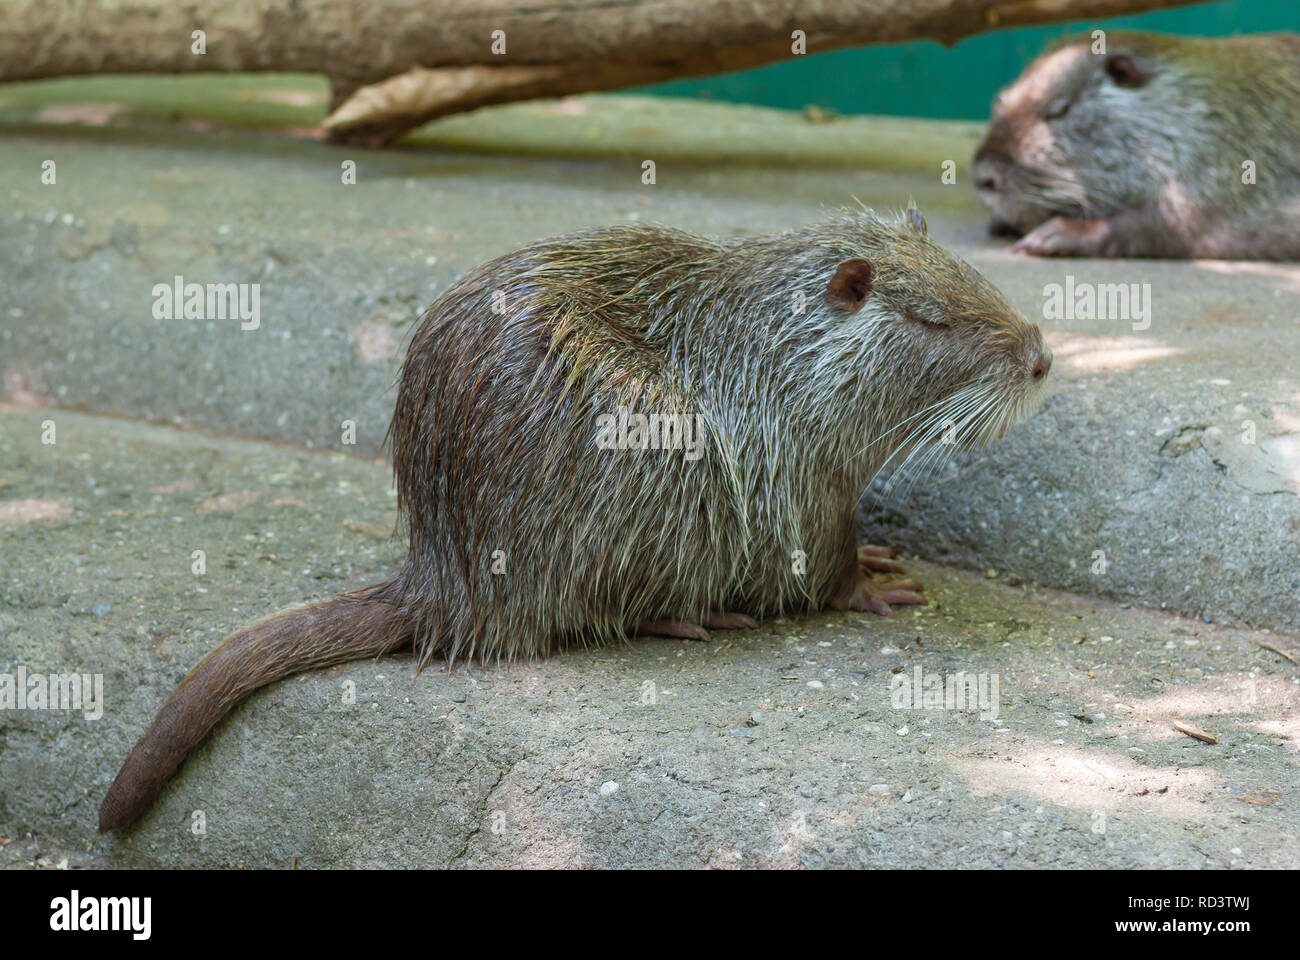 The coypu  also known as the nutria having rest on a concrete surface after bath procedures being in captivity - Stock Image